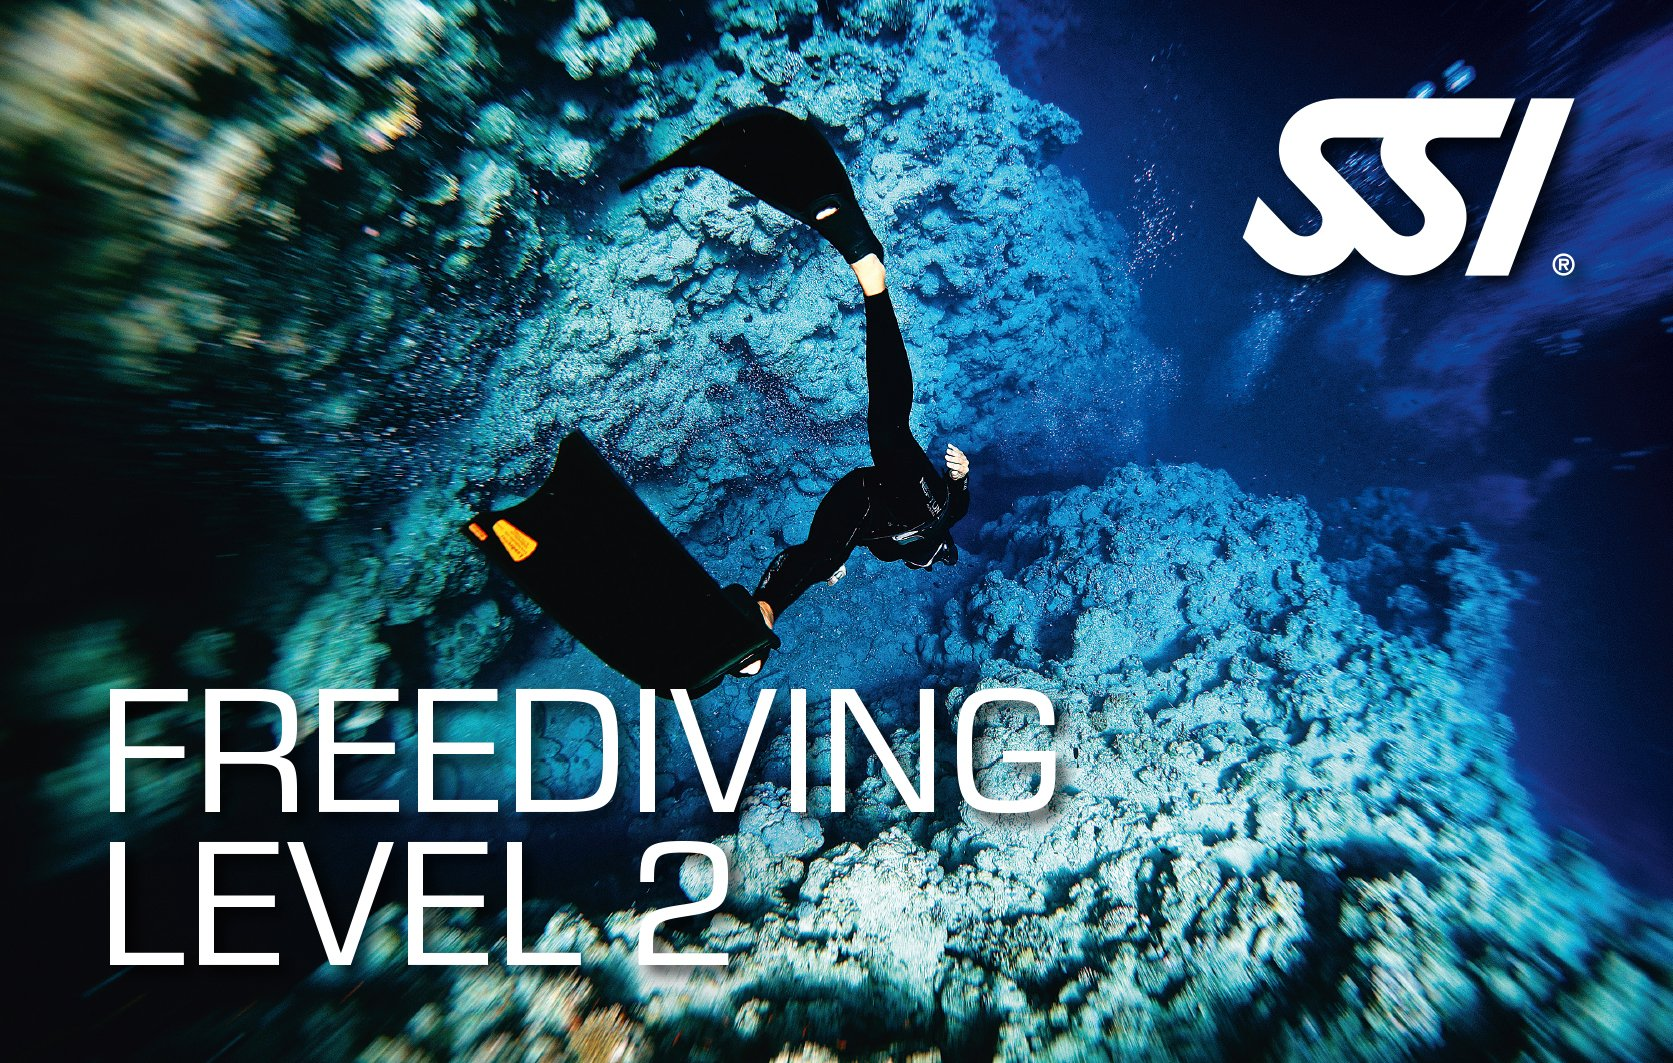 Freediving Level 2